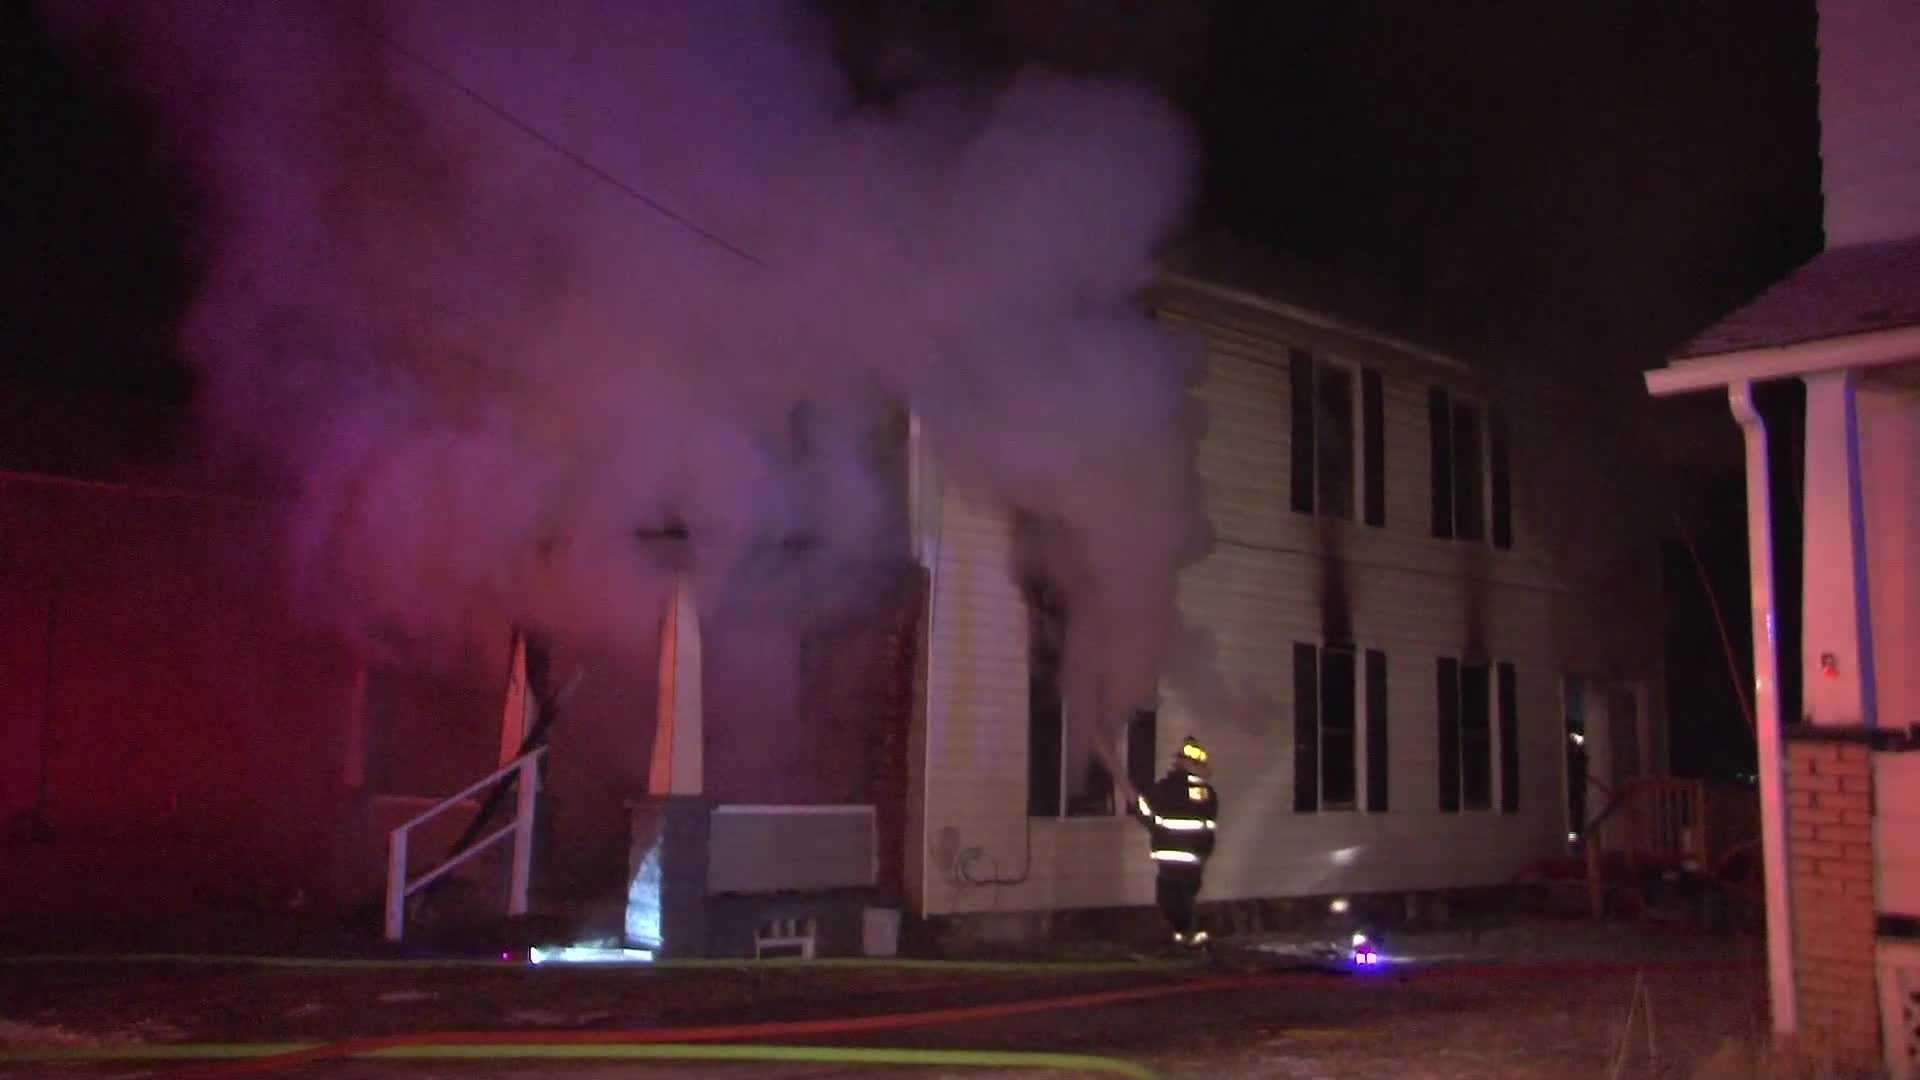 One person died in a house fire on Lathrop Street in New Castle.